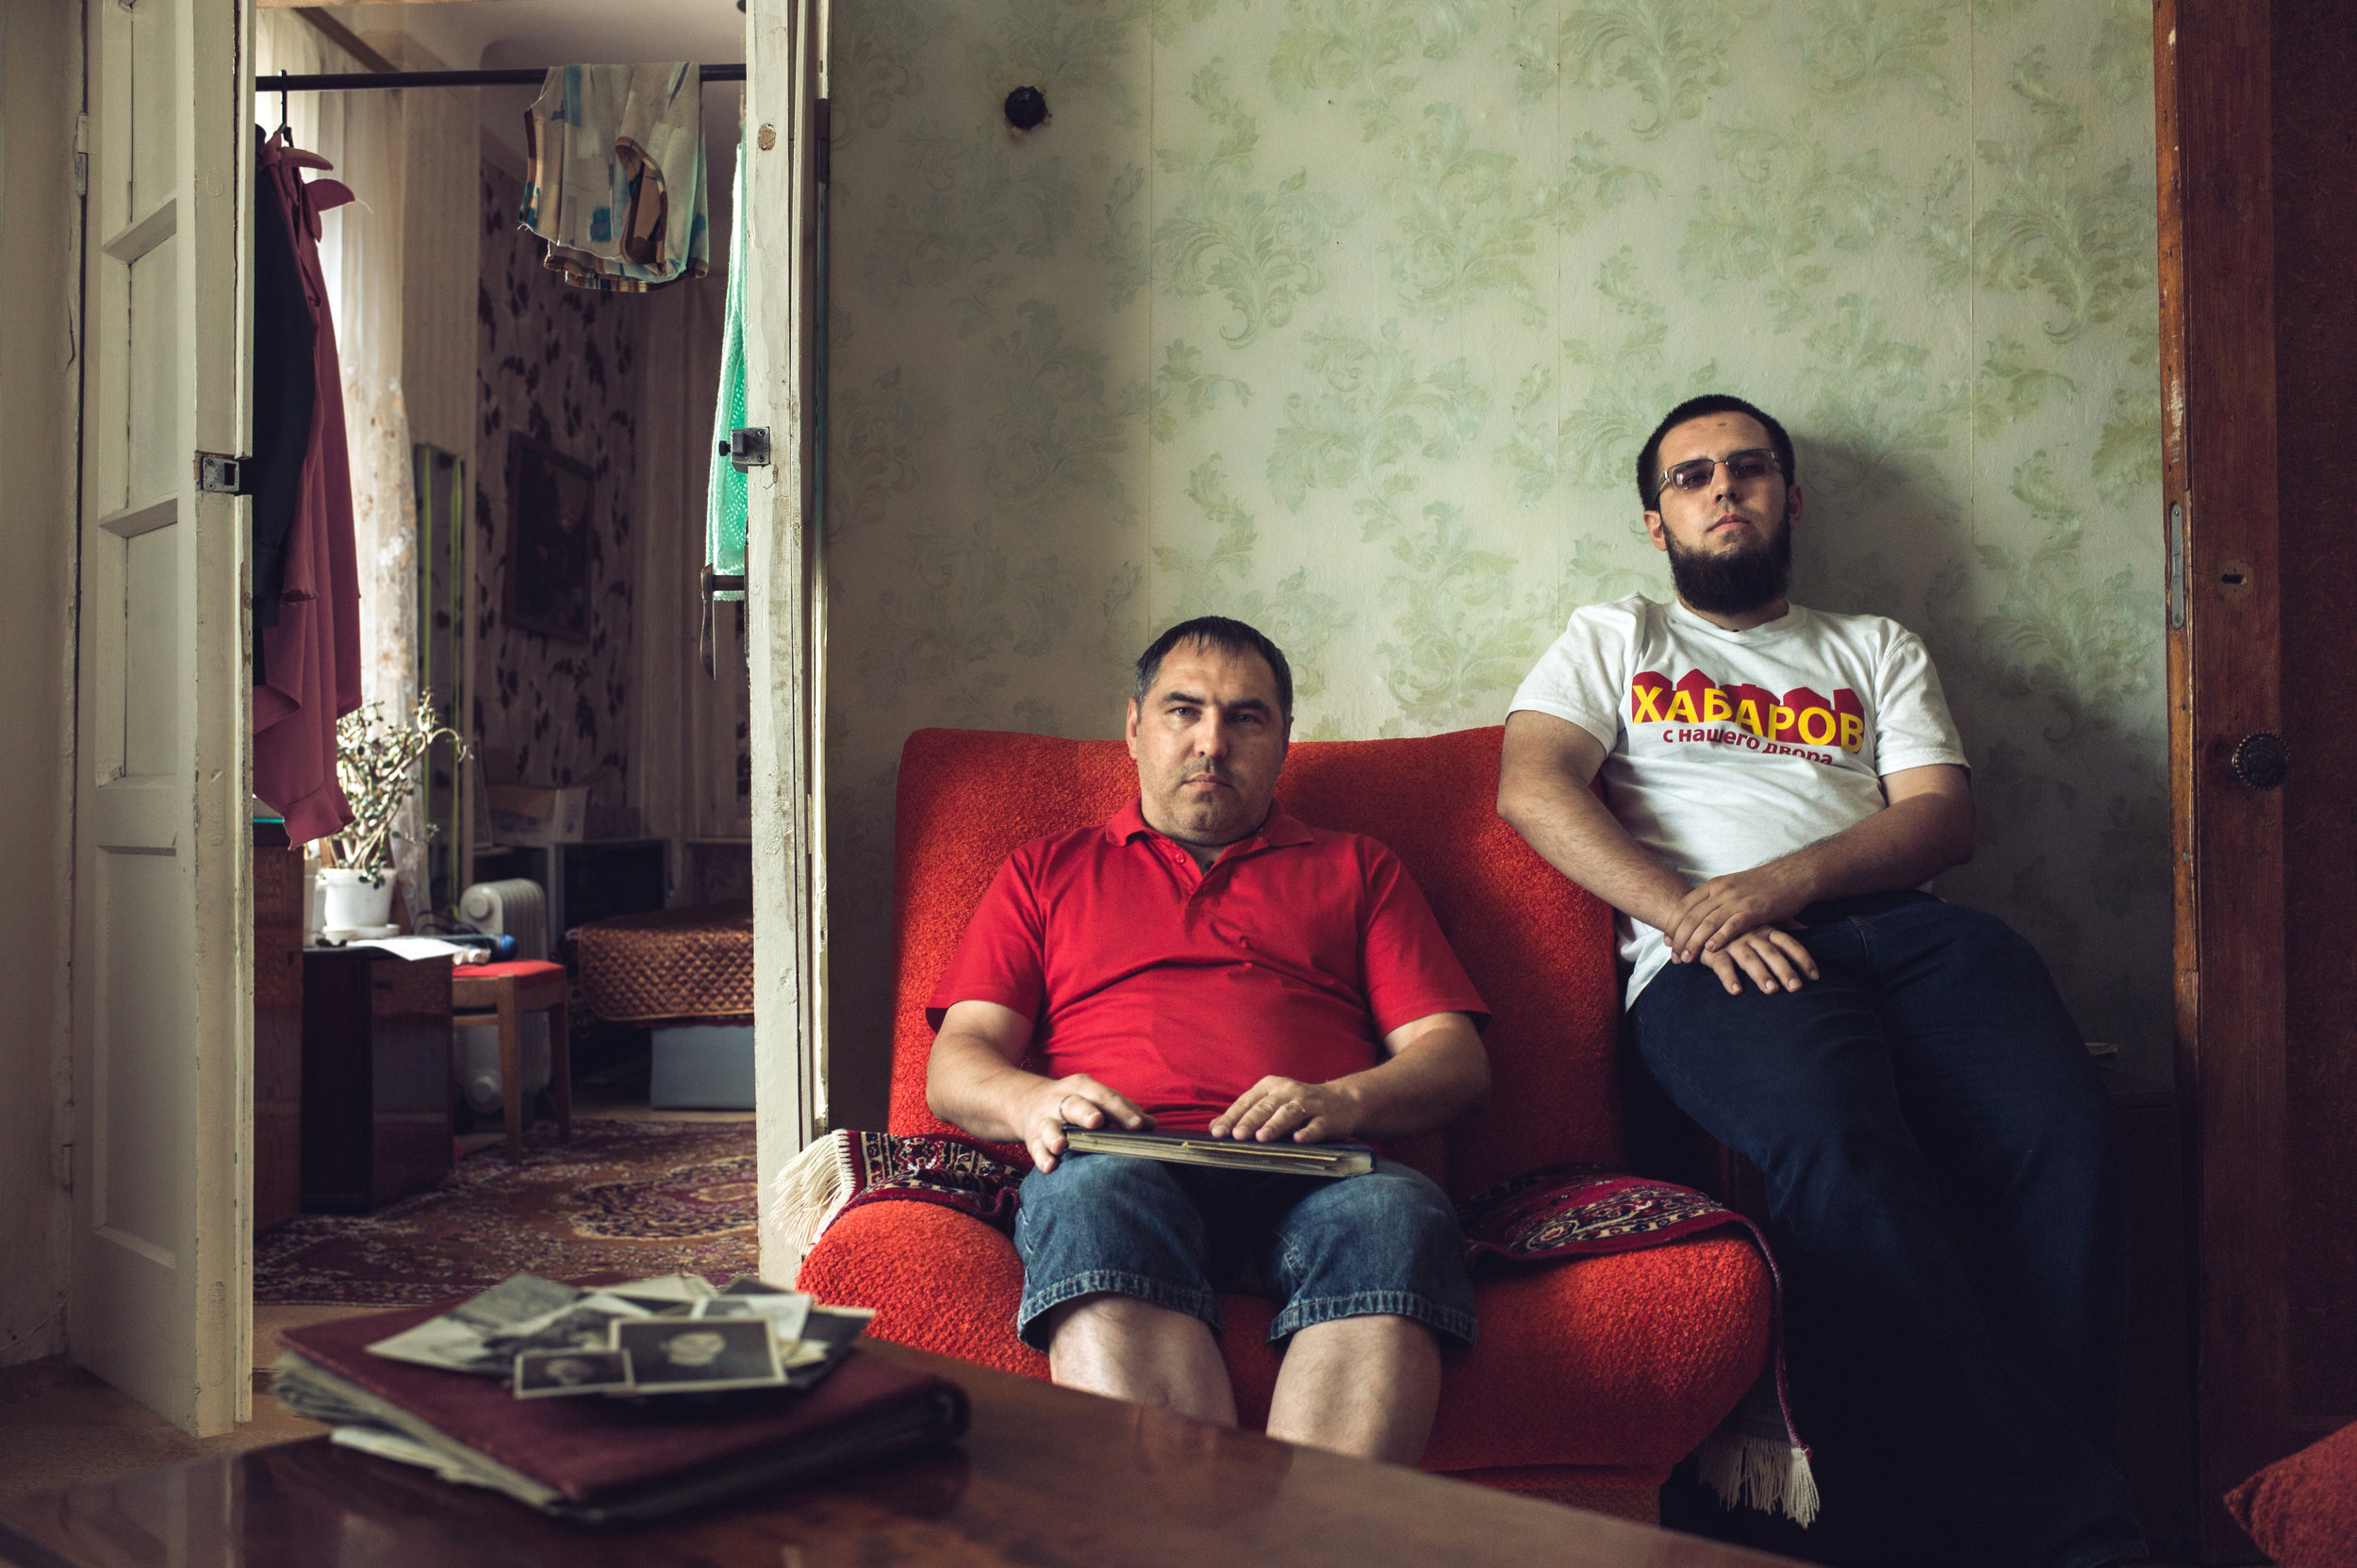 Russia, Voronezh, 27 August 2015. Nikita (Sayfuddin) Khabarov, 22 (R) is a fairly new convert who is still struggling to express his views on religion. He prefers not to tell why he has converted, but hinted on influence of friends.